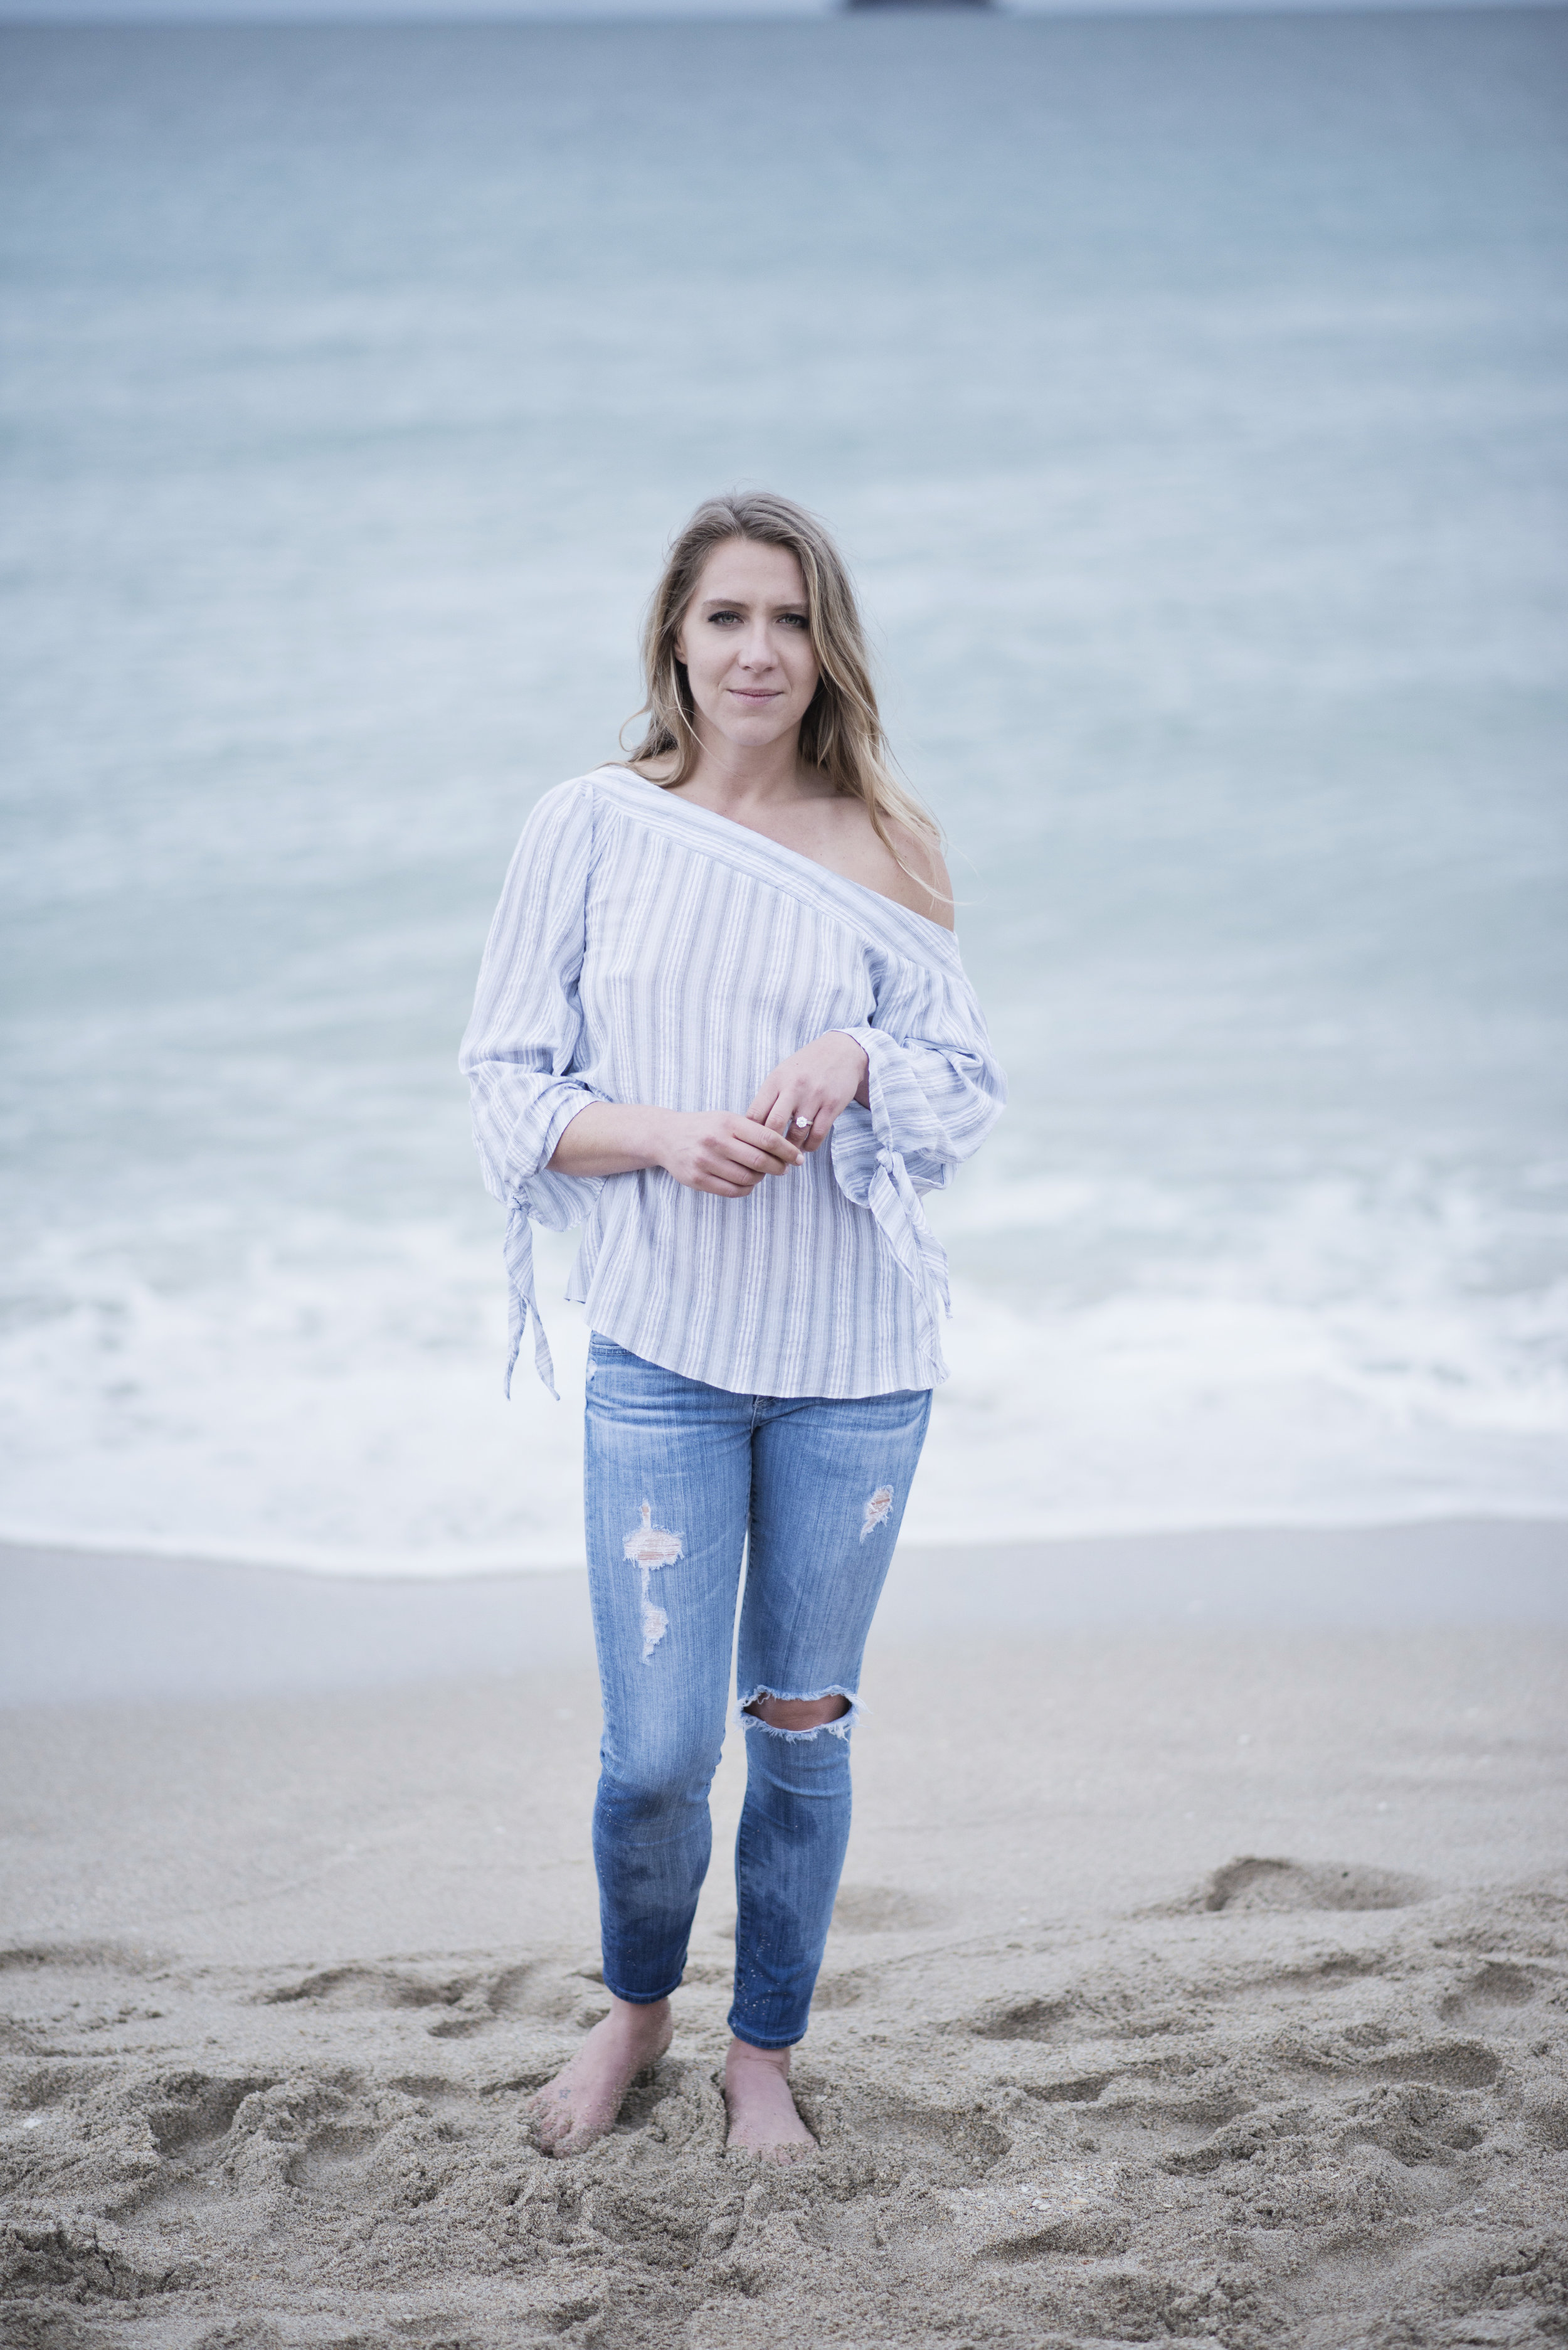 Bride to be Candice by the ocean in Florida. Engagement photos in Florida. Las Vegas Wedding Planner Andrea Eppolito. Image by AltF Photography.